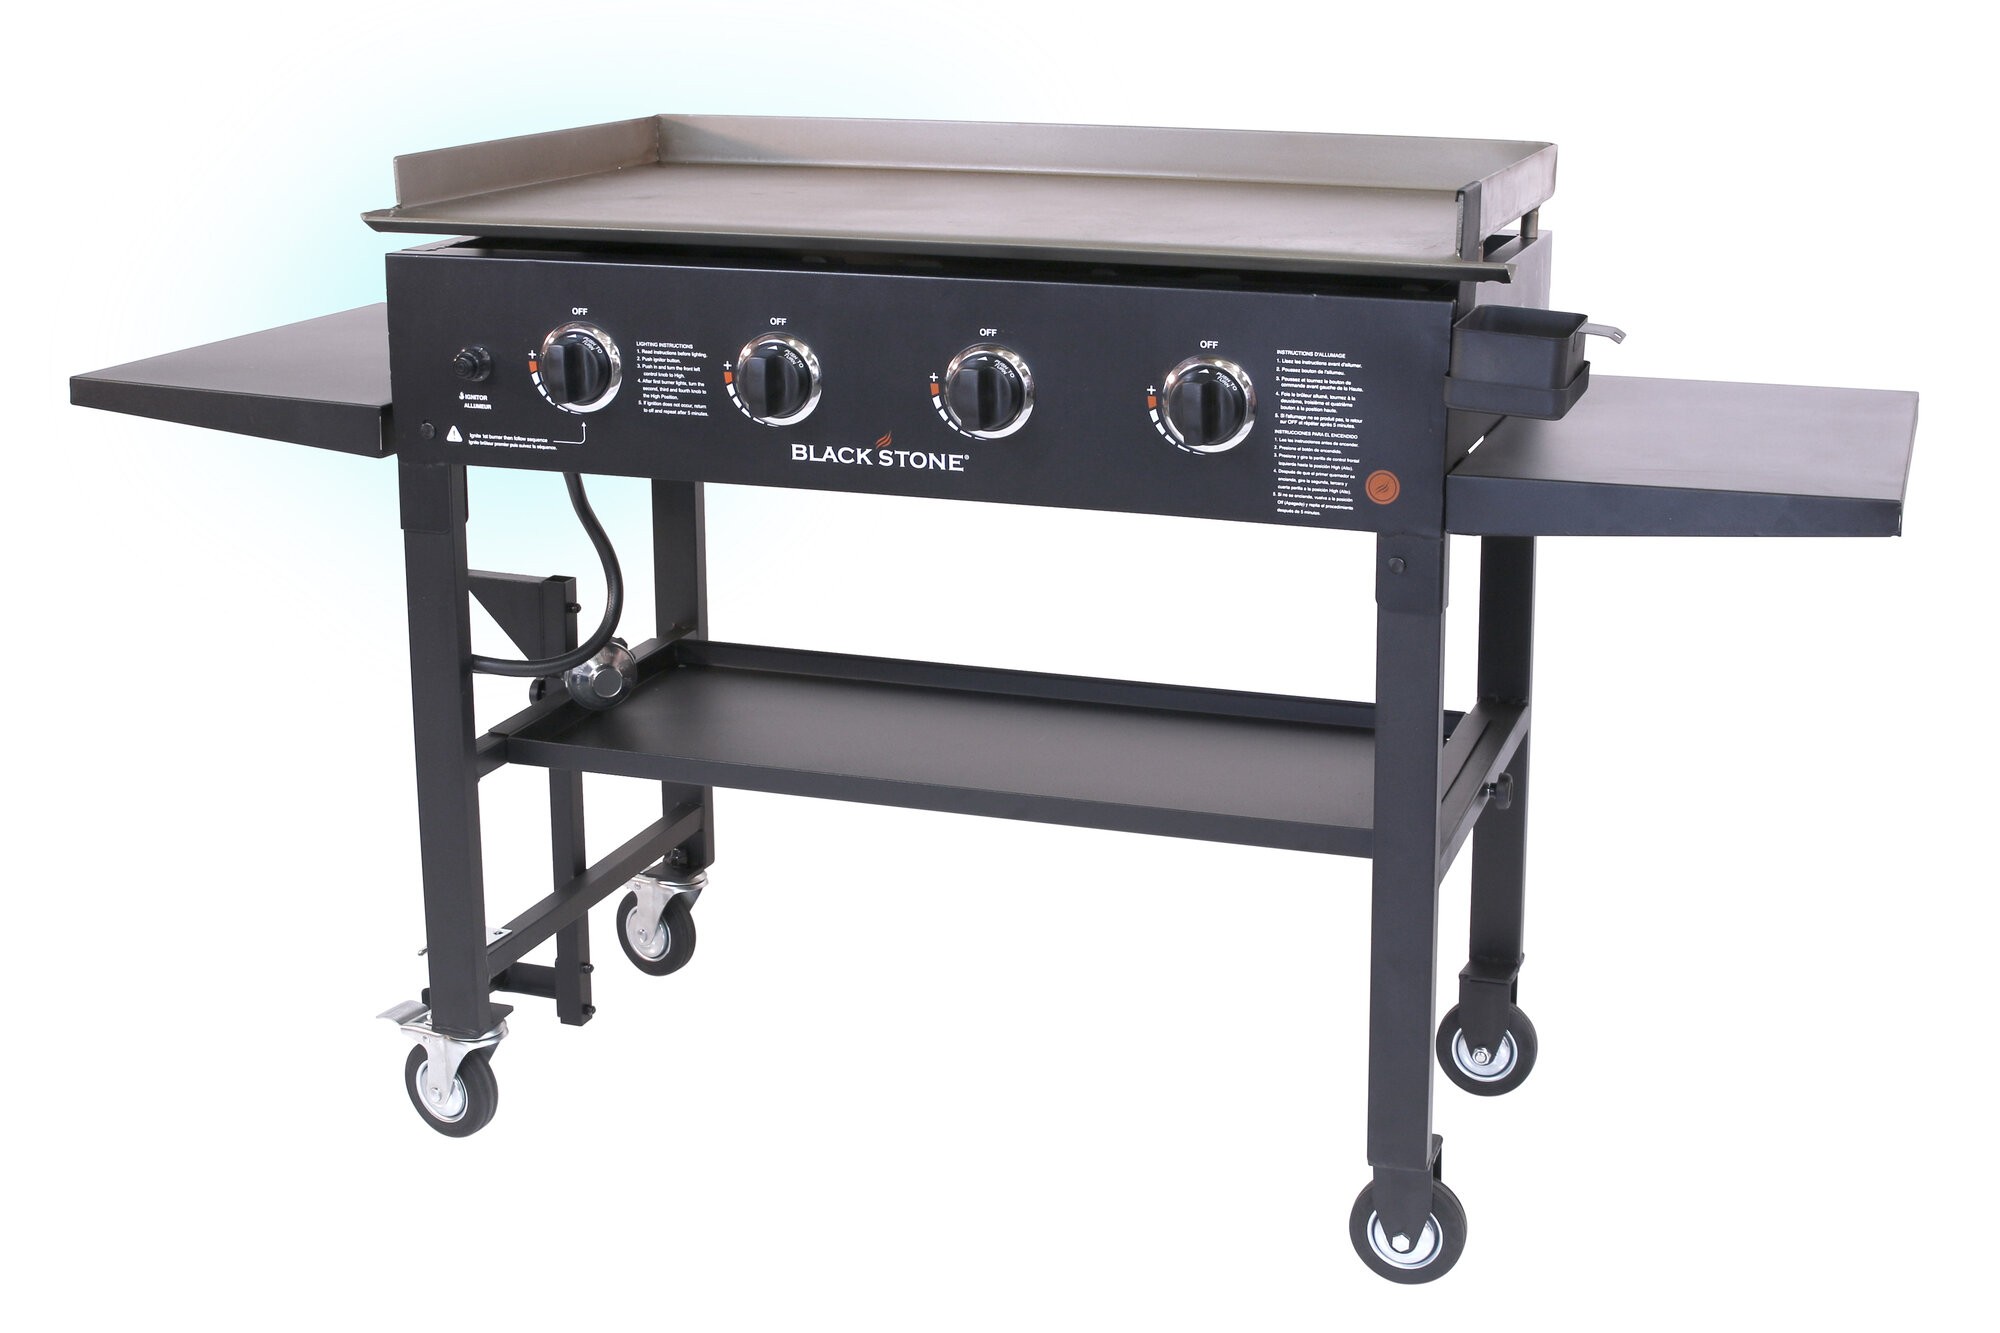 Gas Grill Flat Top Griddle 4 Burner Cooktop Portable BBQ ...